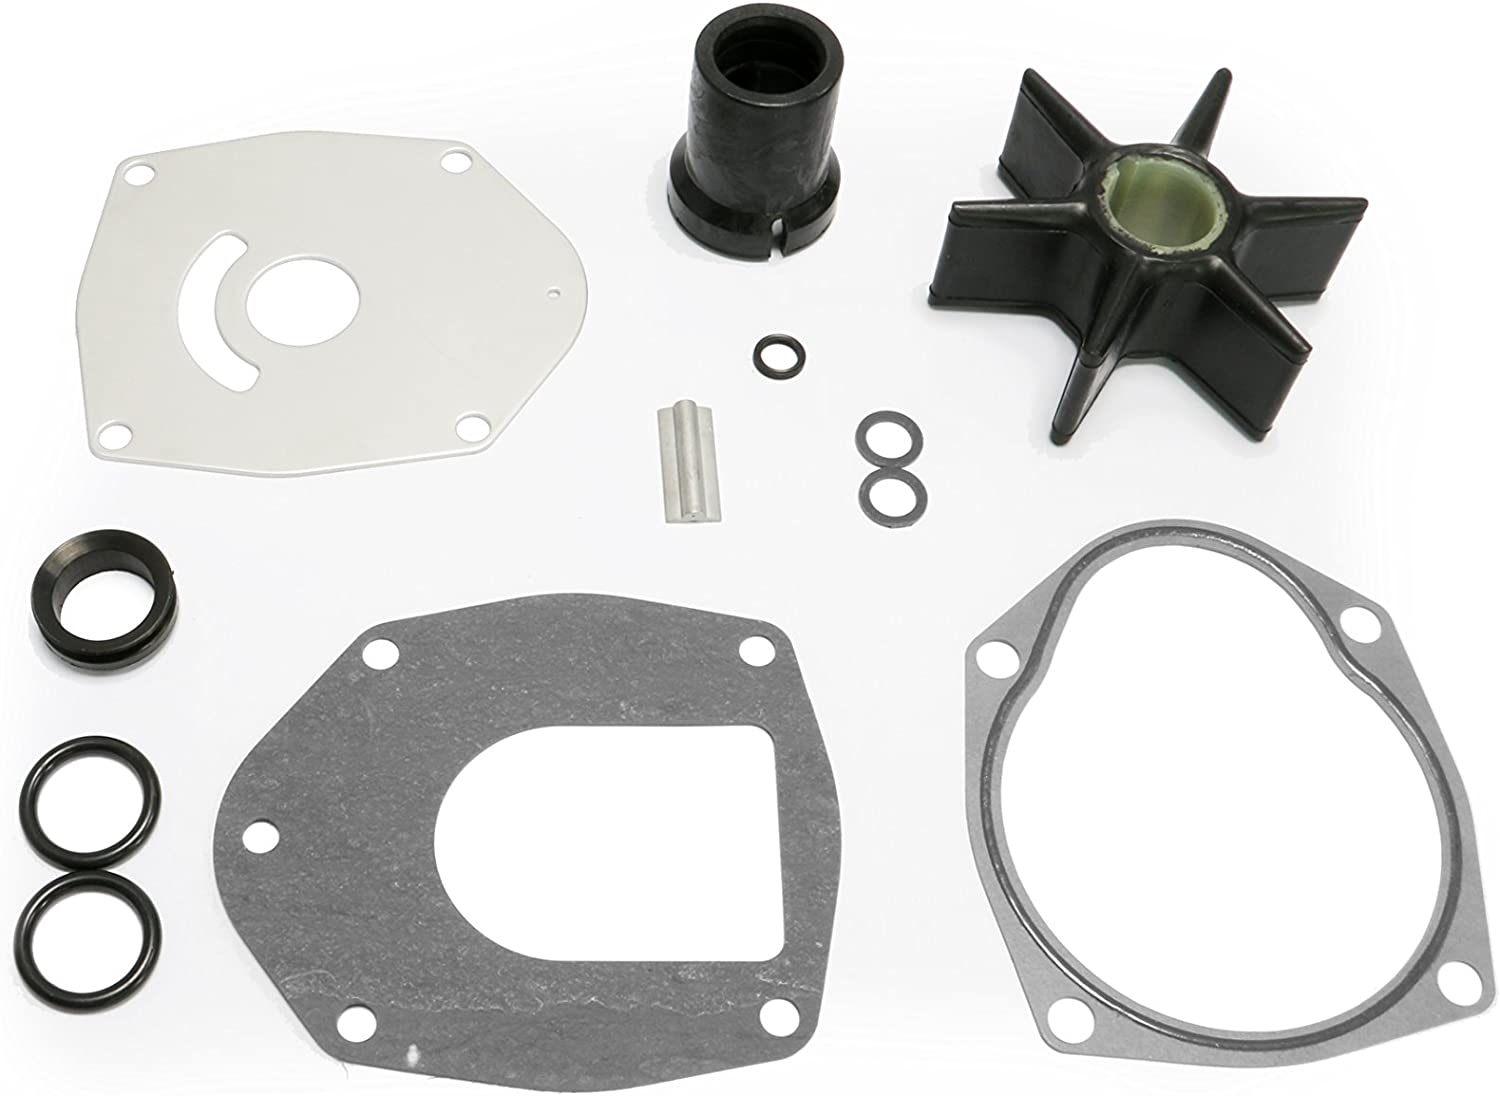 PumuHo Mariner Mercury Mercruiser Alpha One Gen 2 47-43026Q06 40-250 HP Water Pump Repair Kit Outboard Impeller Sierra 18-3214 47-43026T11 47-8M0100526